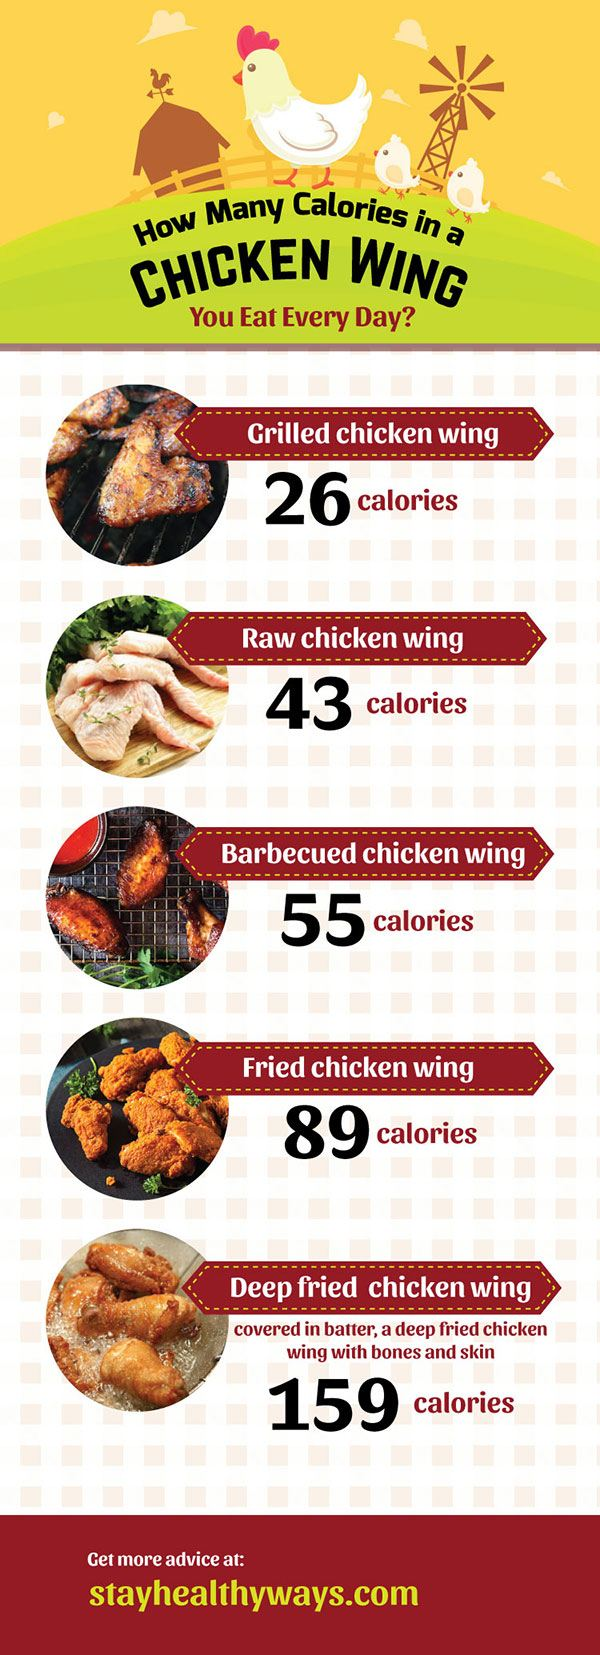 grilled chicken wings calories